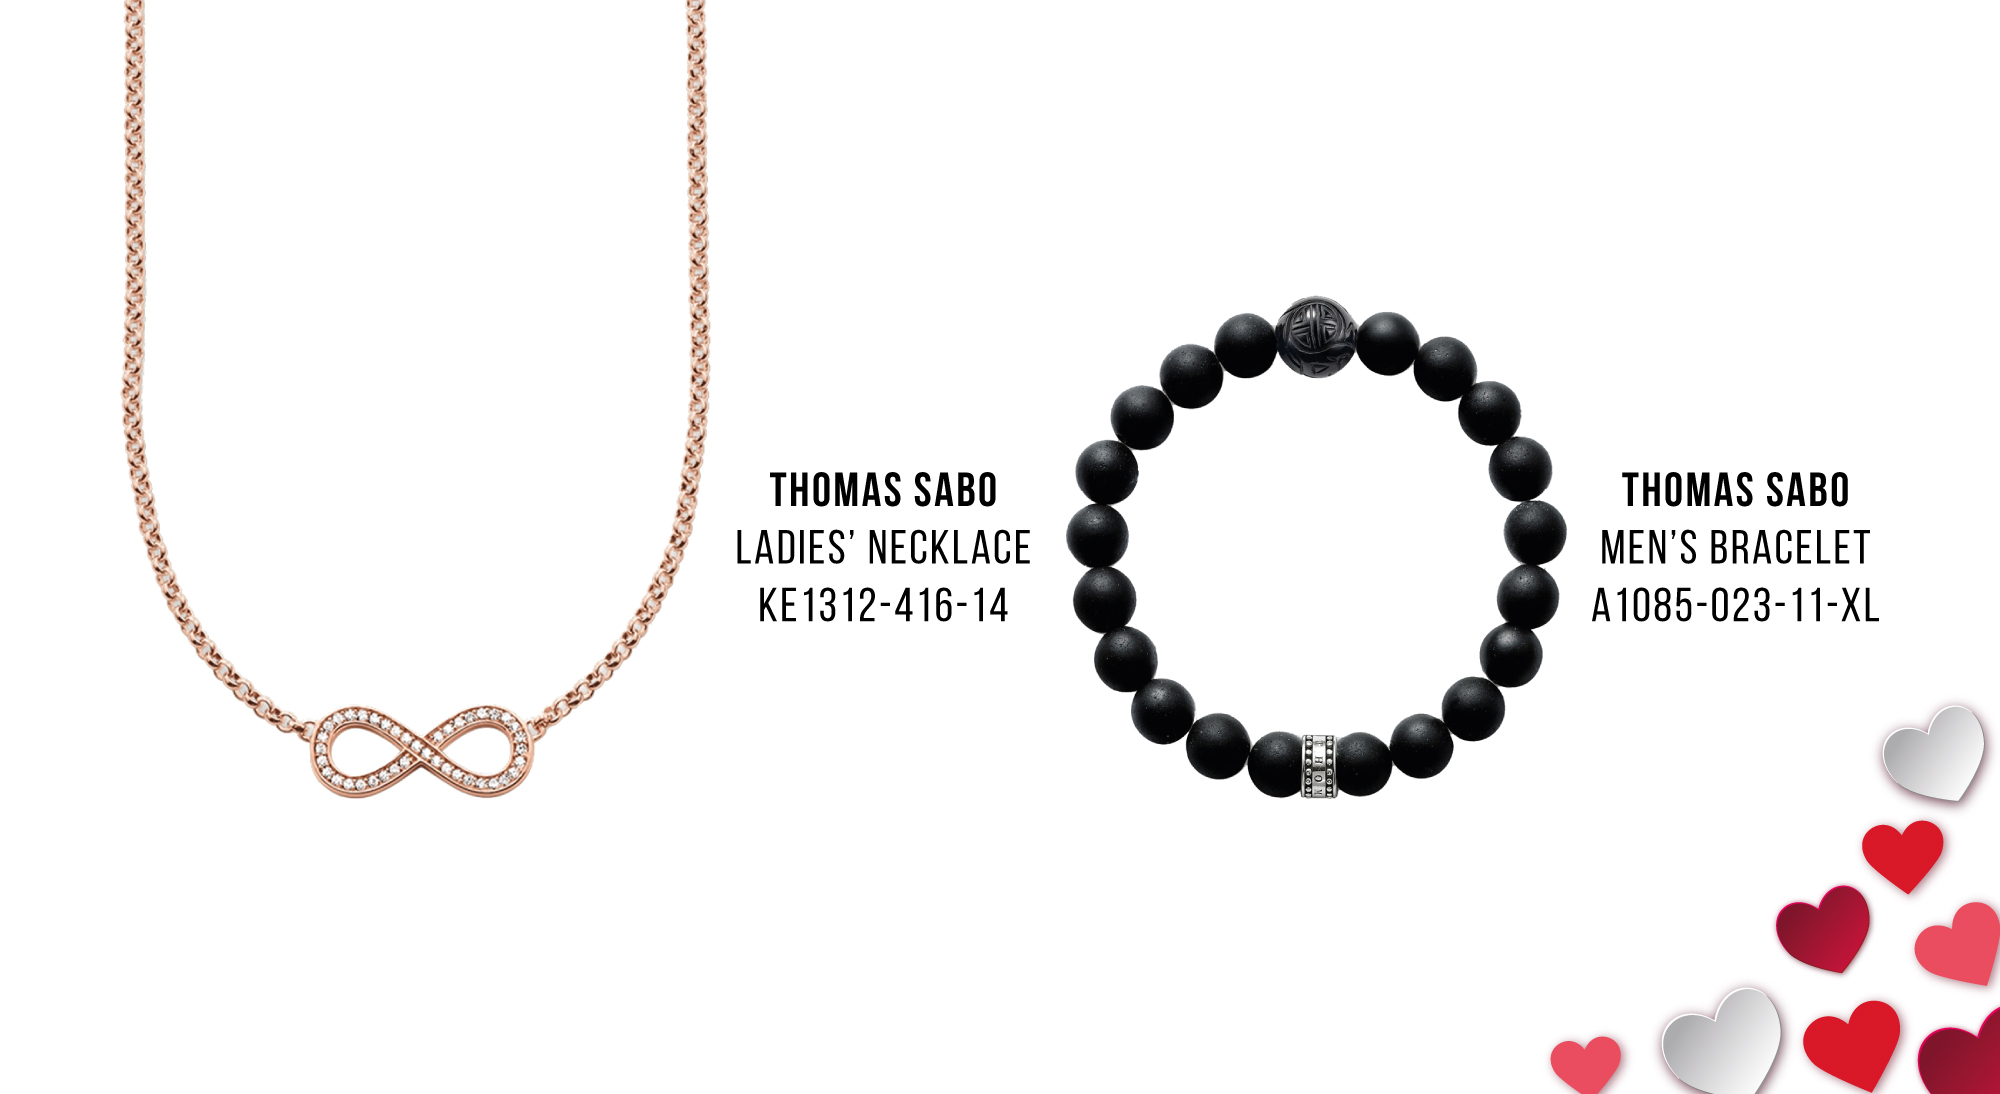 Luxury Valentine's Day Gifts Thomas Sabo jewellery